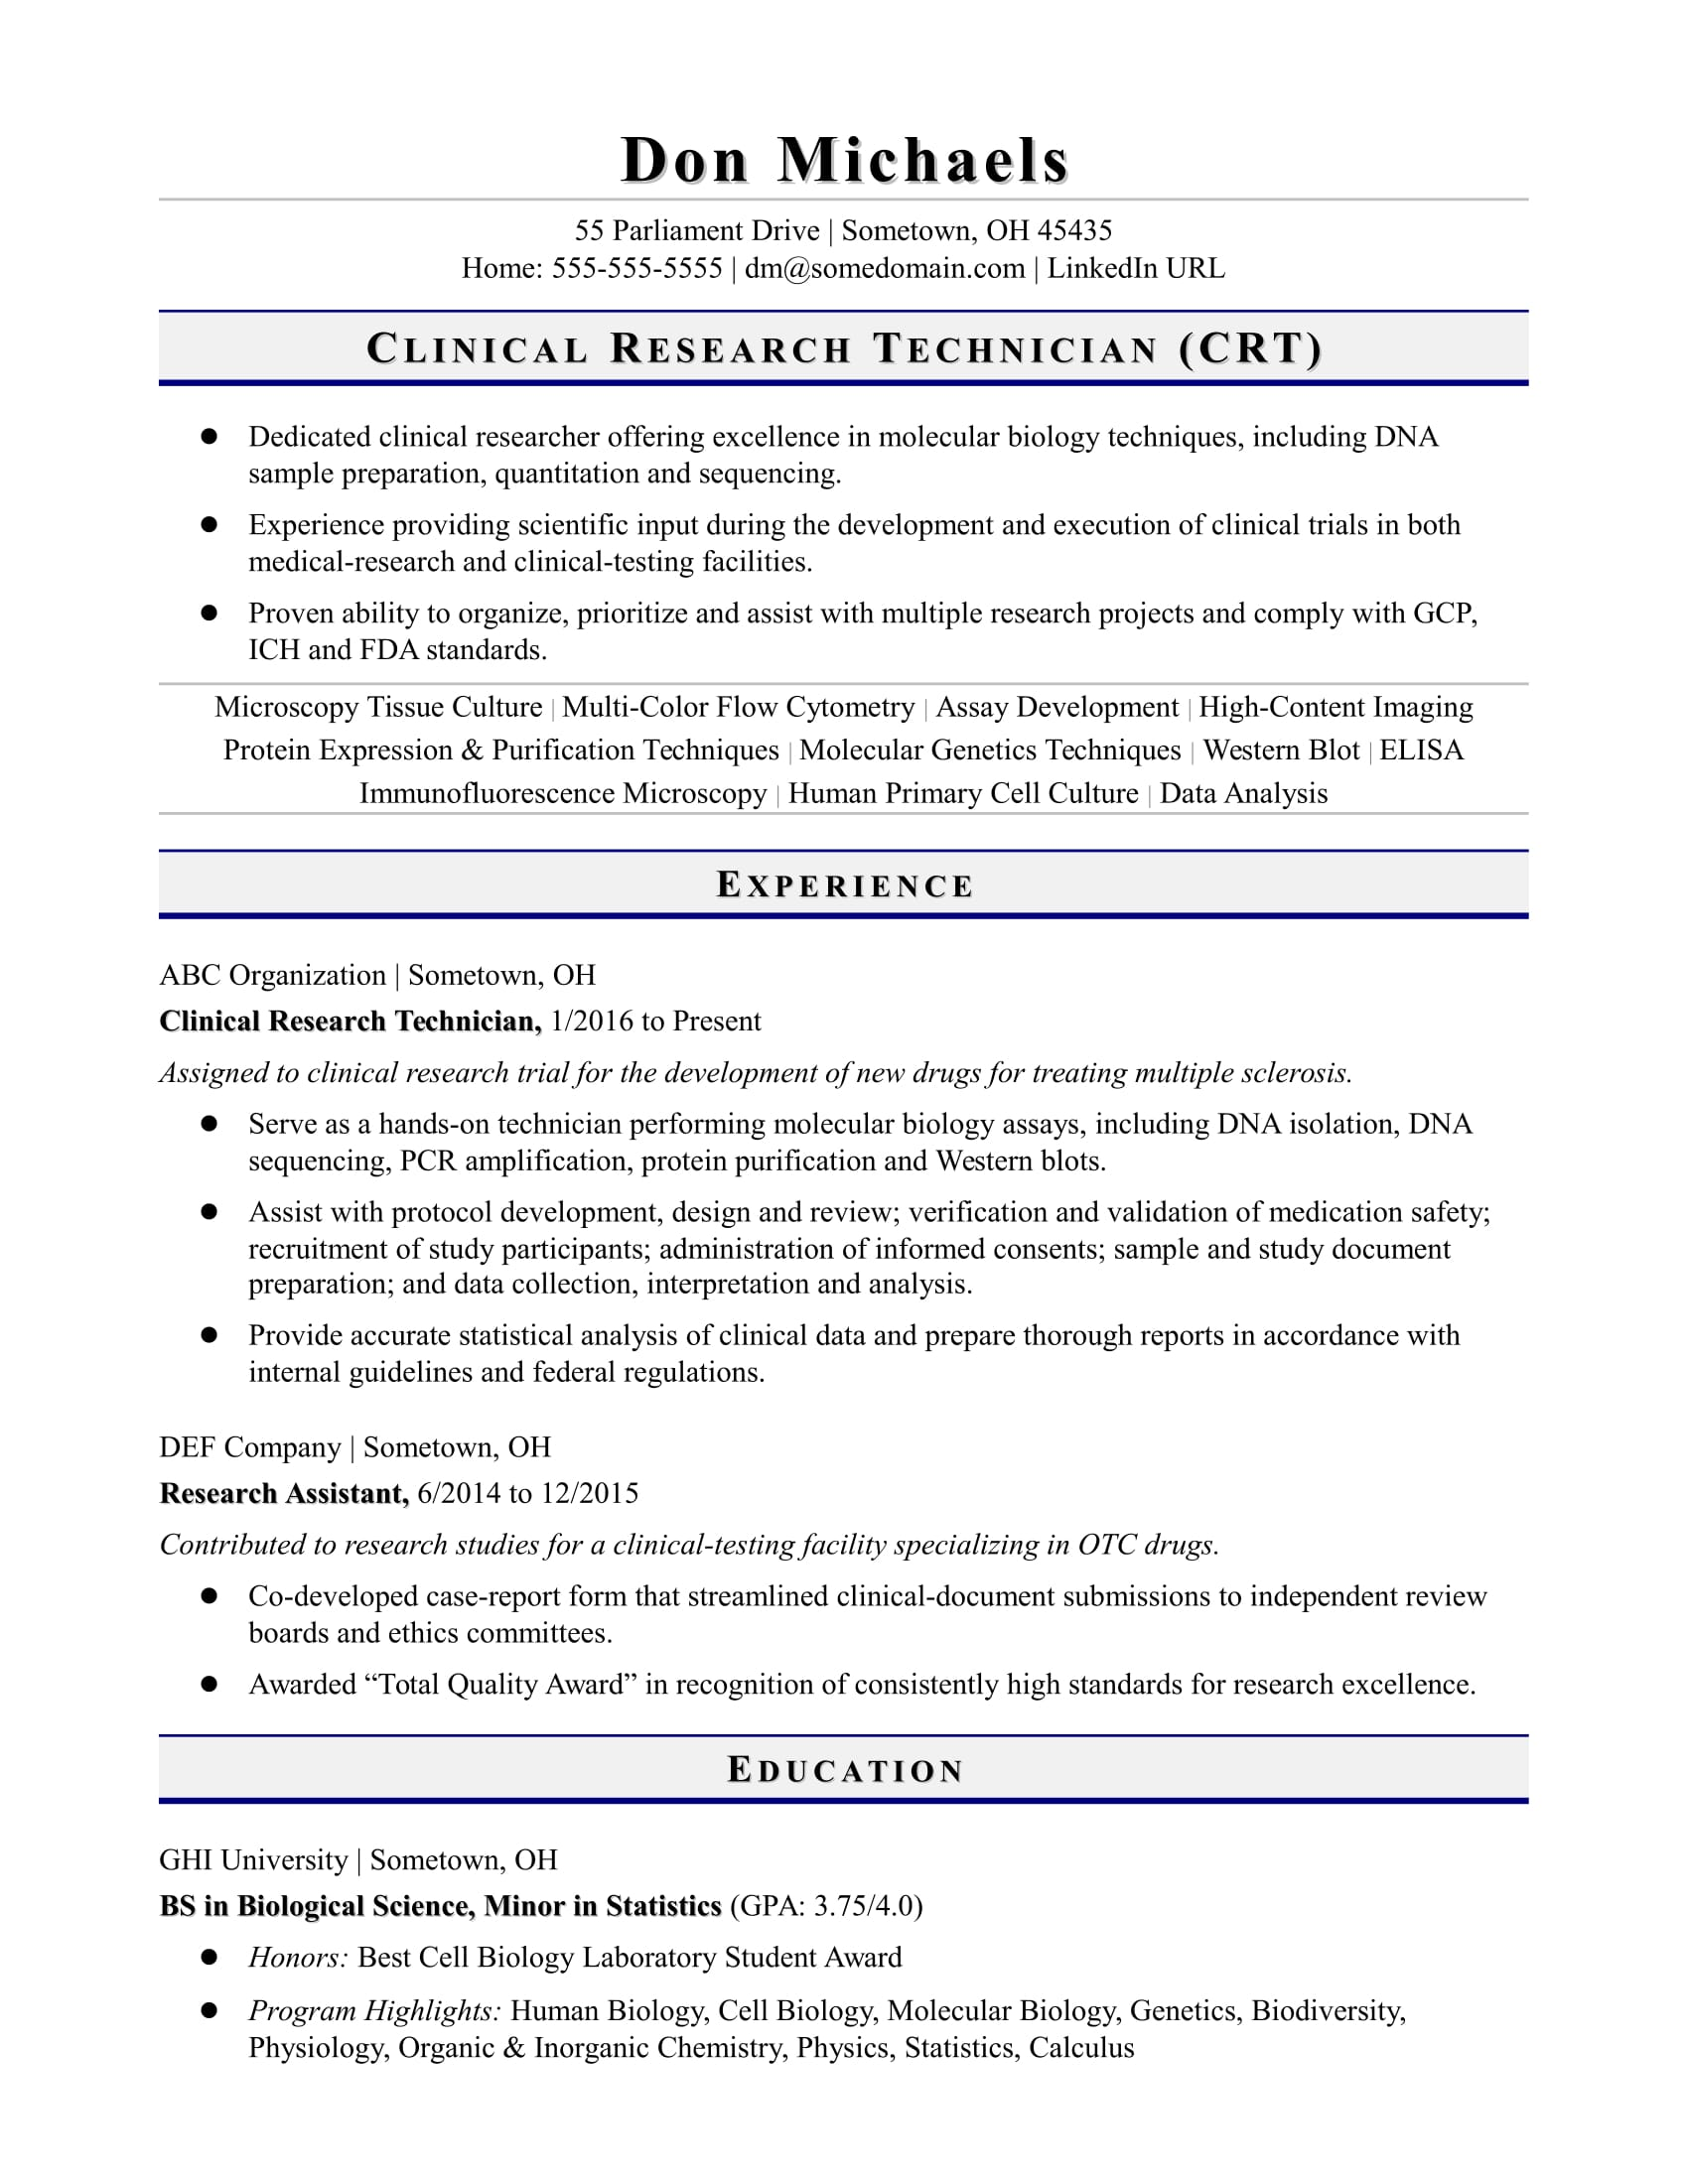 EntryLevel Research Technician Resume Sample   Monster